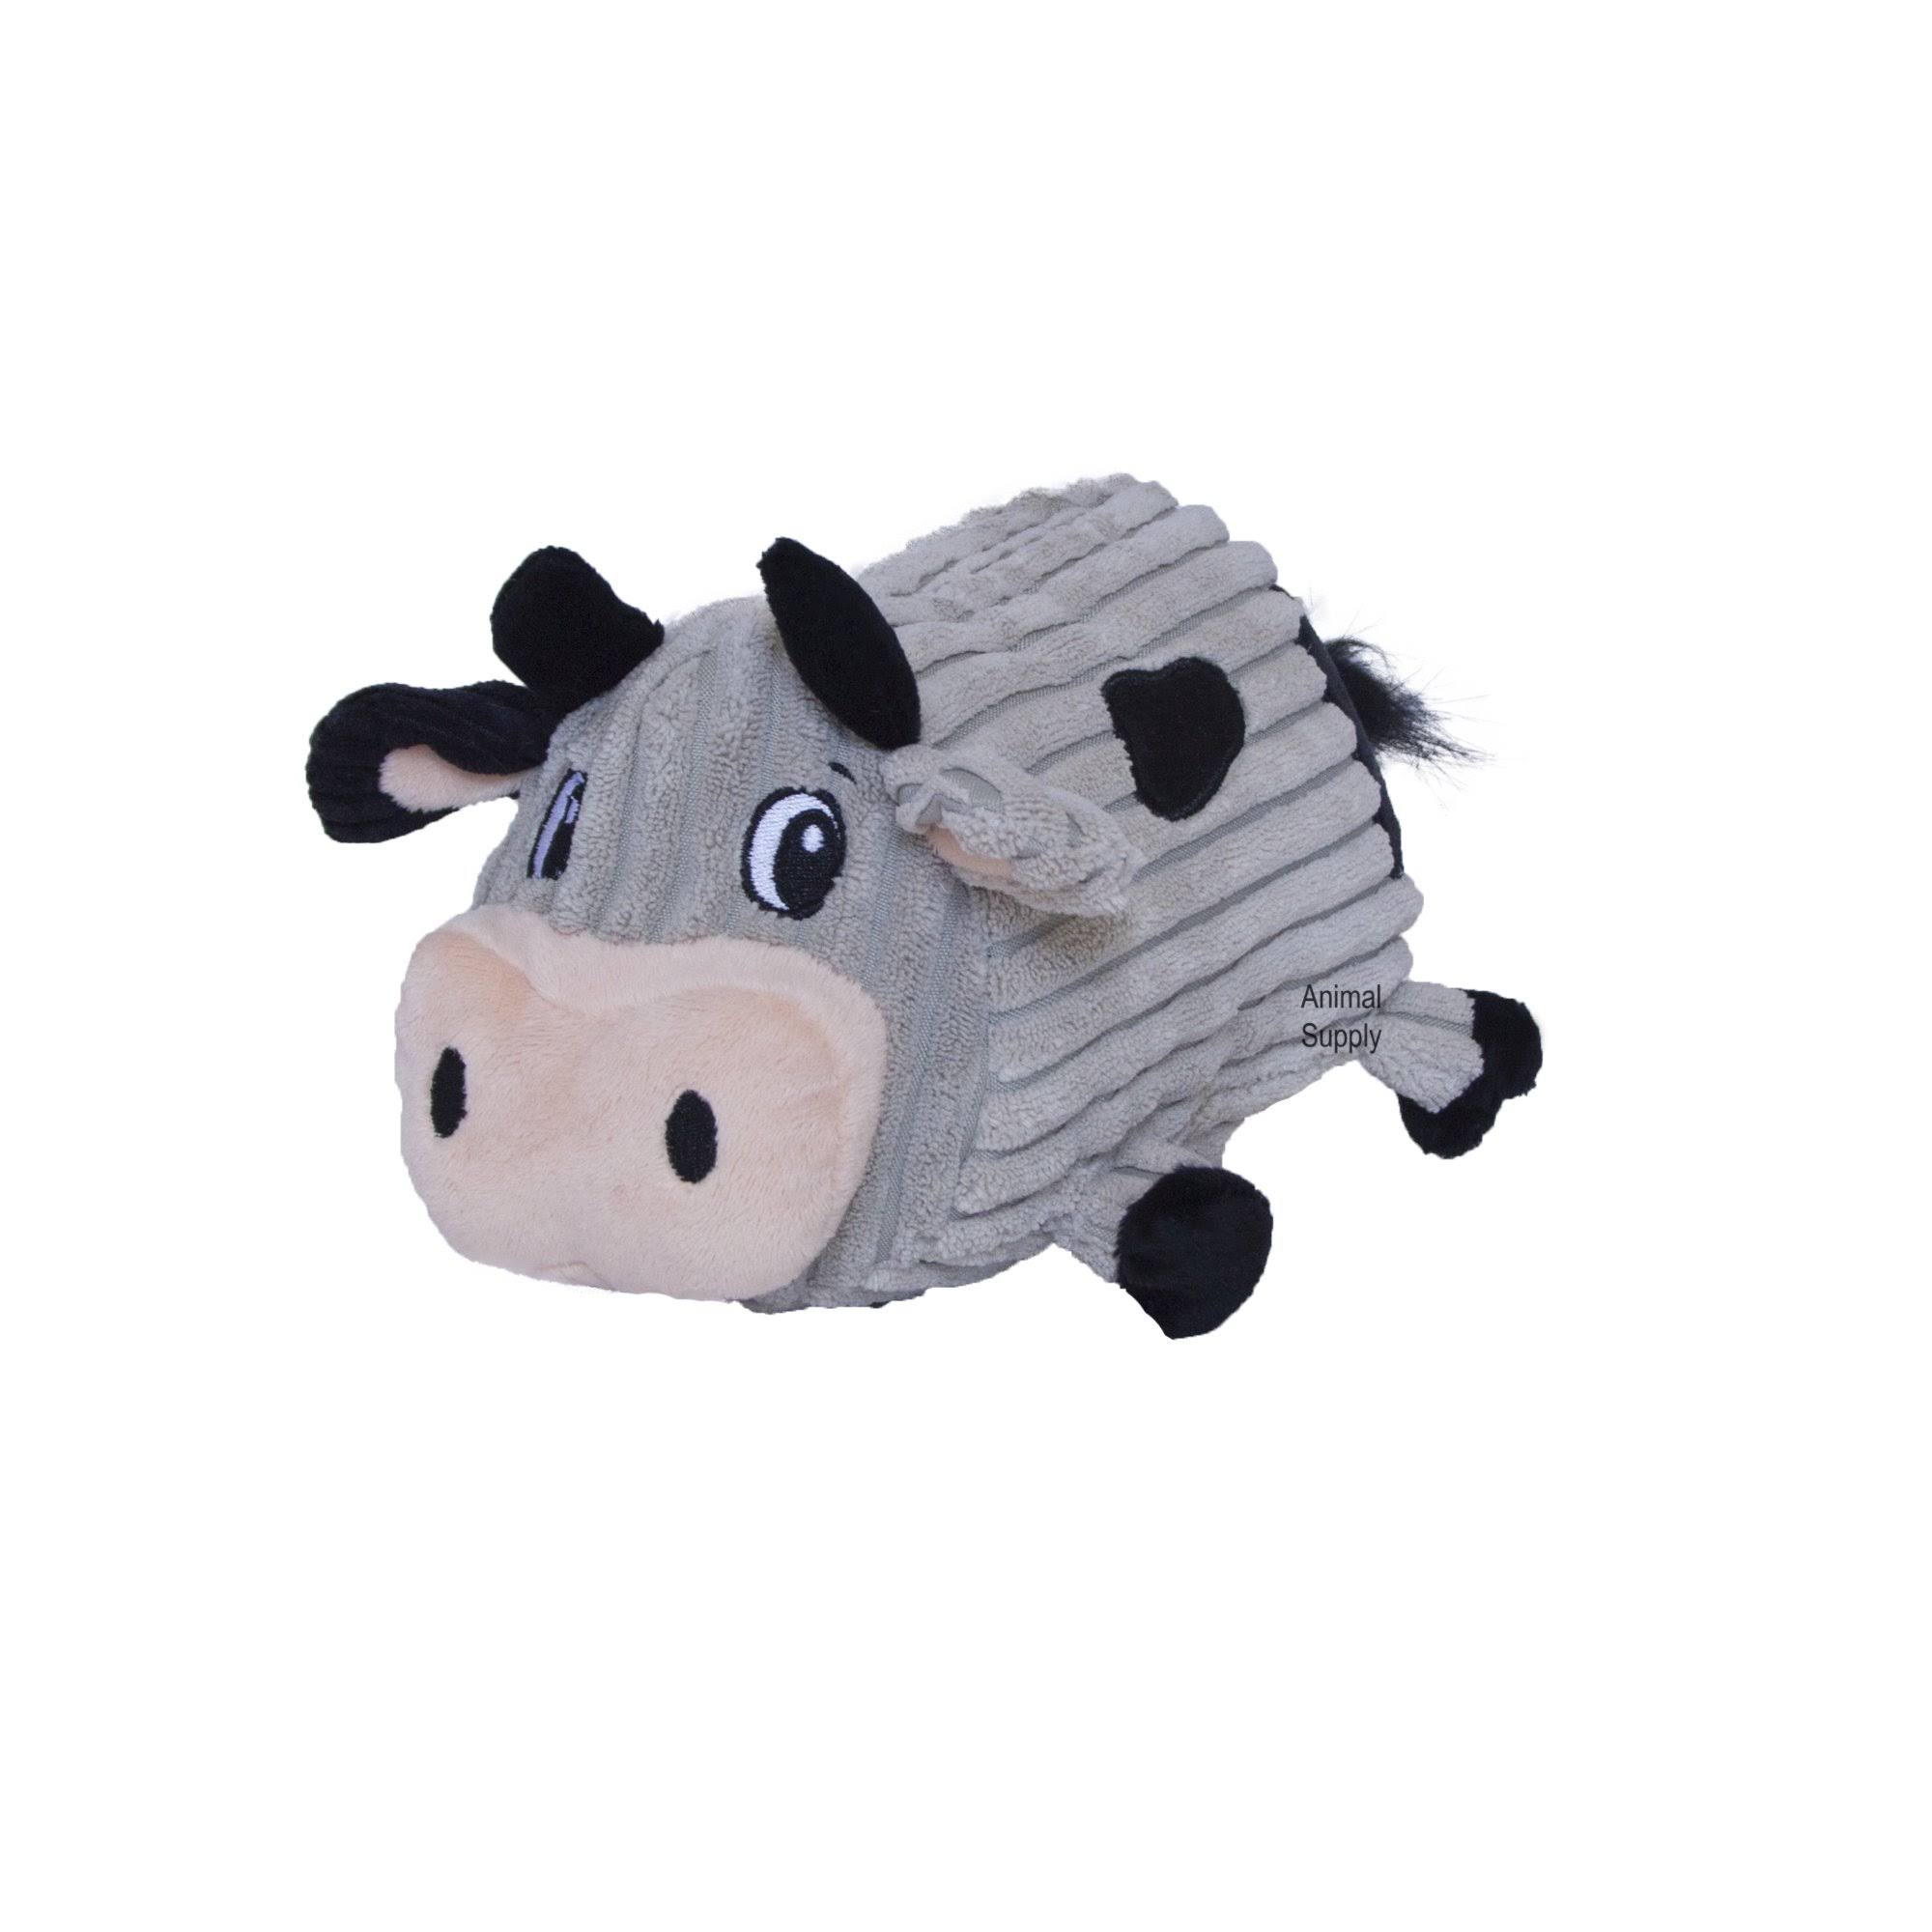 Outward Hound Fattiez Round Squeaky Plush Dog Toy - Cow, Medium